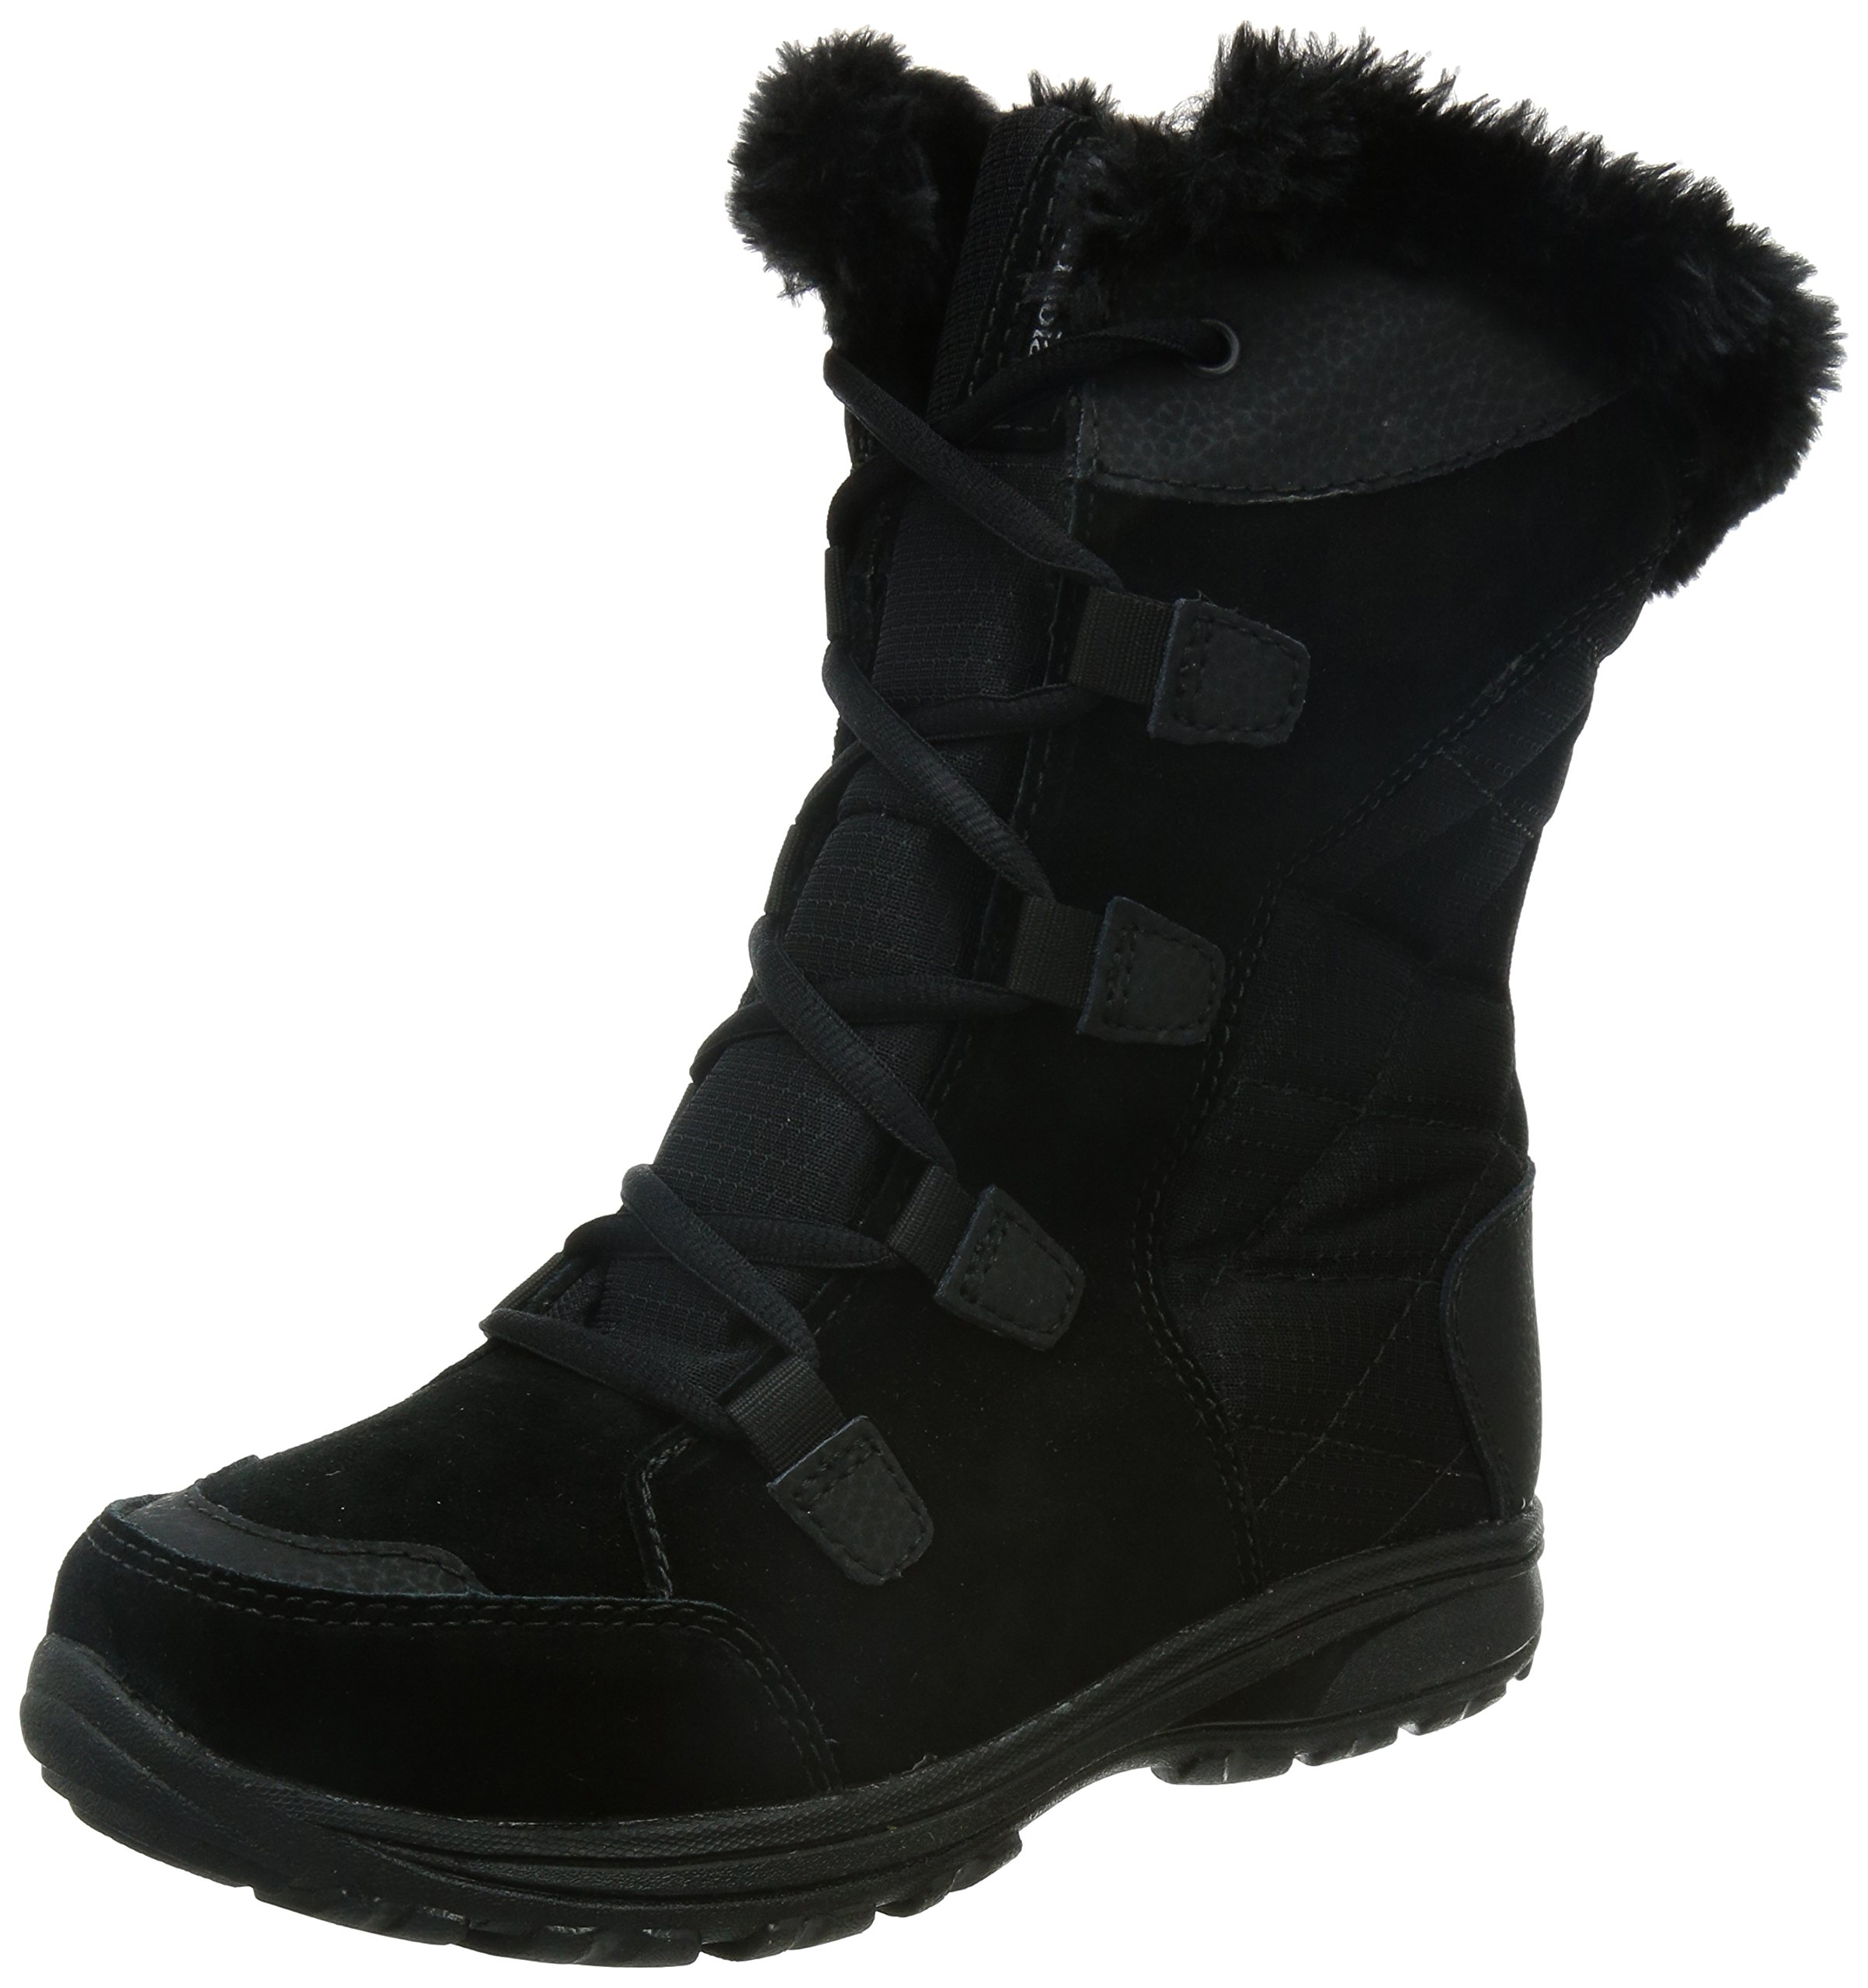 Good Womens Snow Boots - Boot Ri